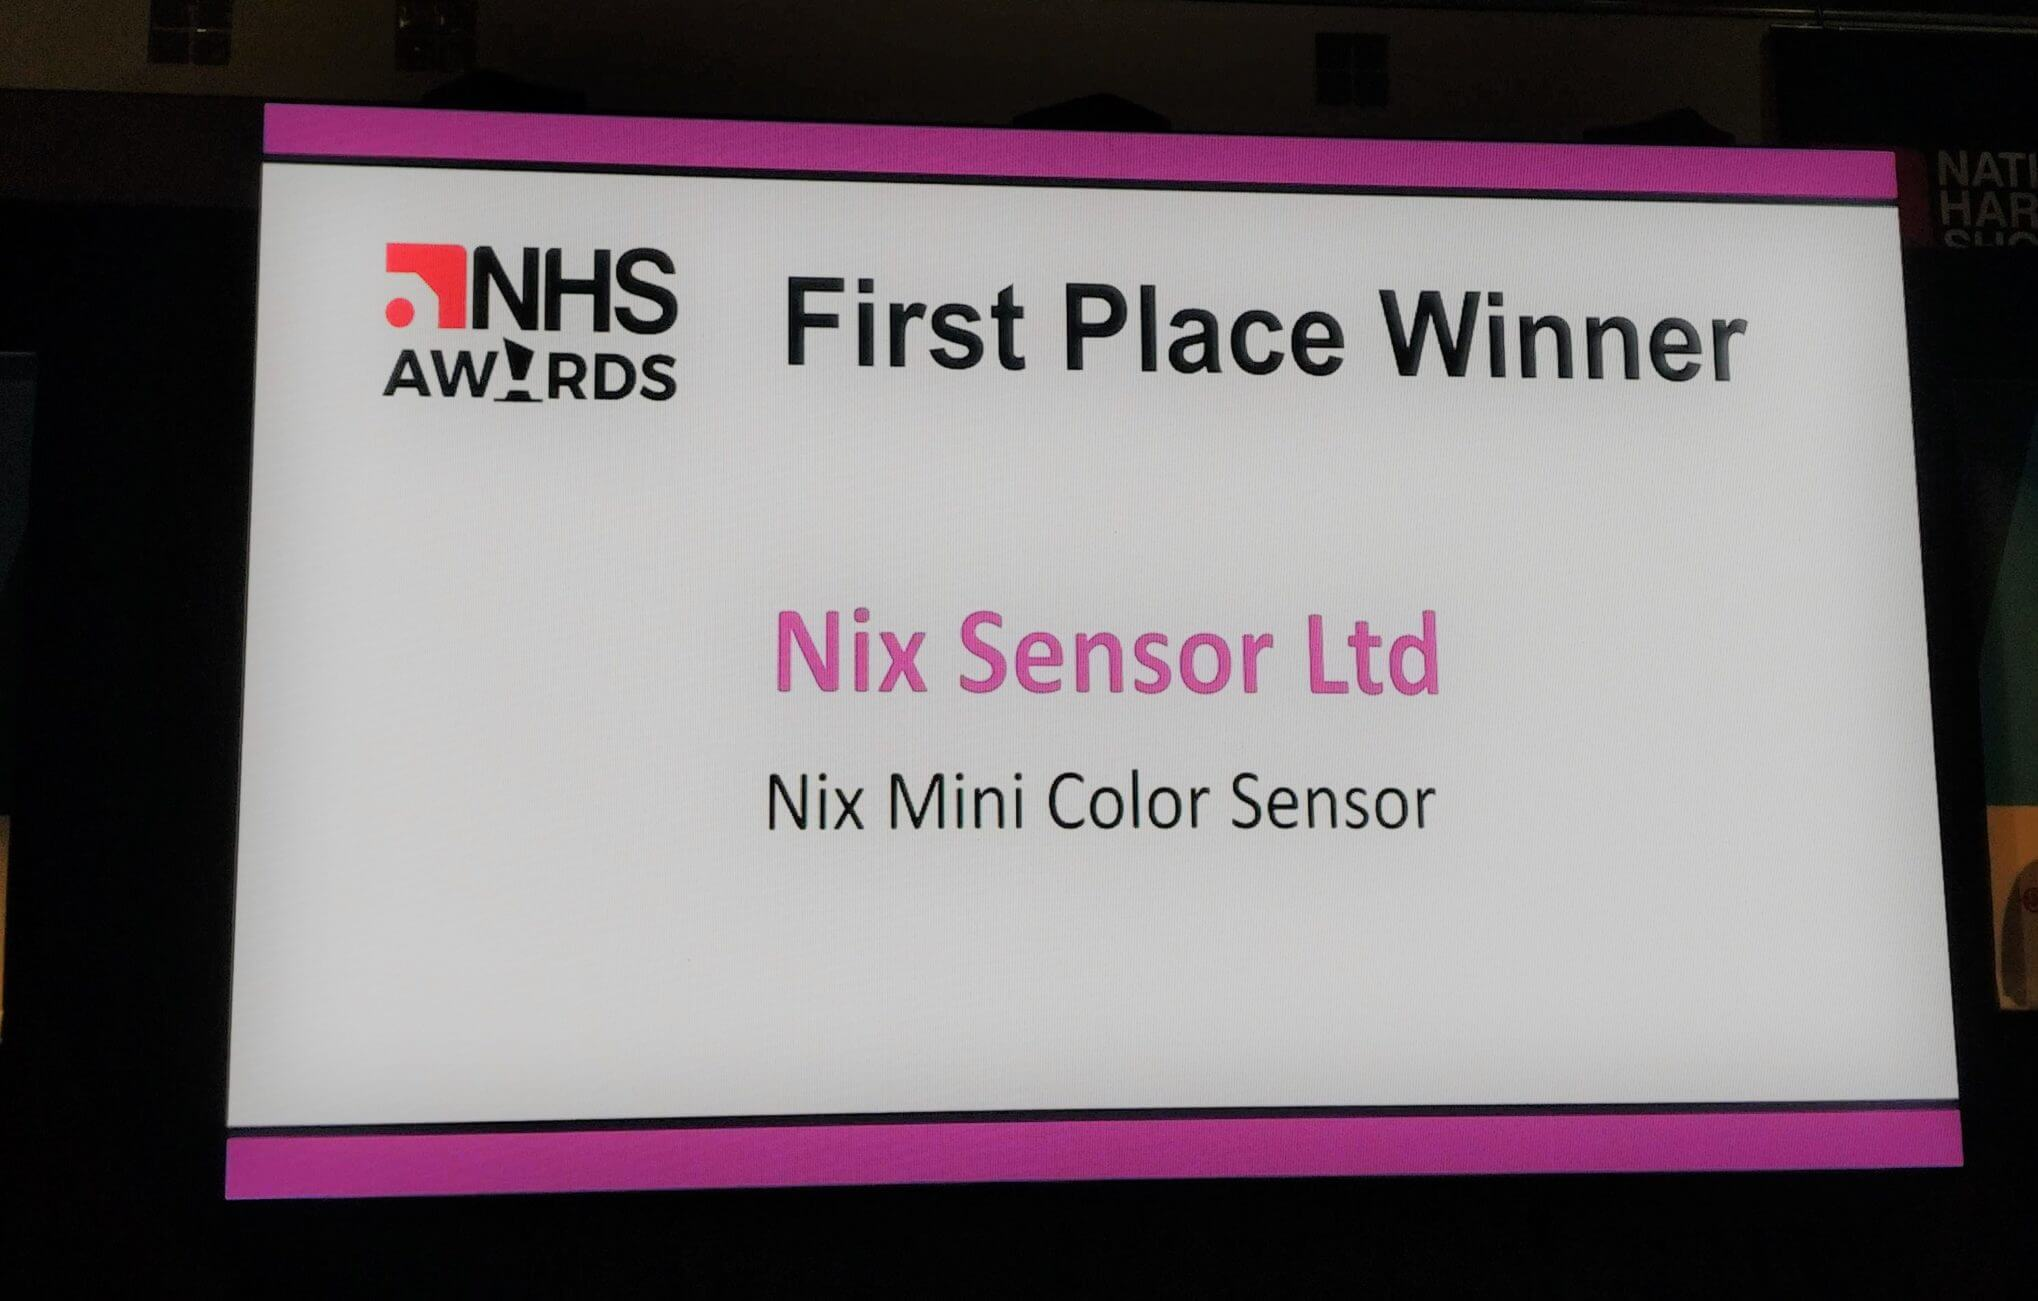 Nix Sensor Ltd. as first place winner for the New Product Launch Award